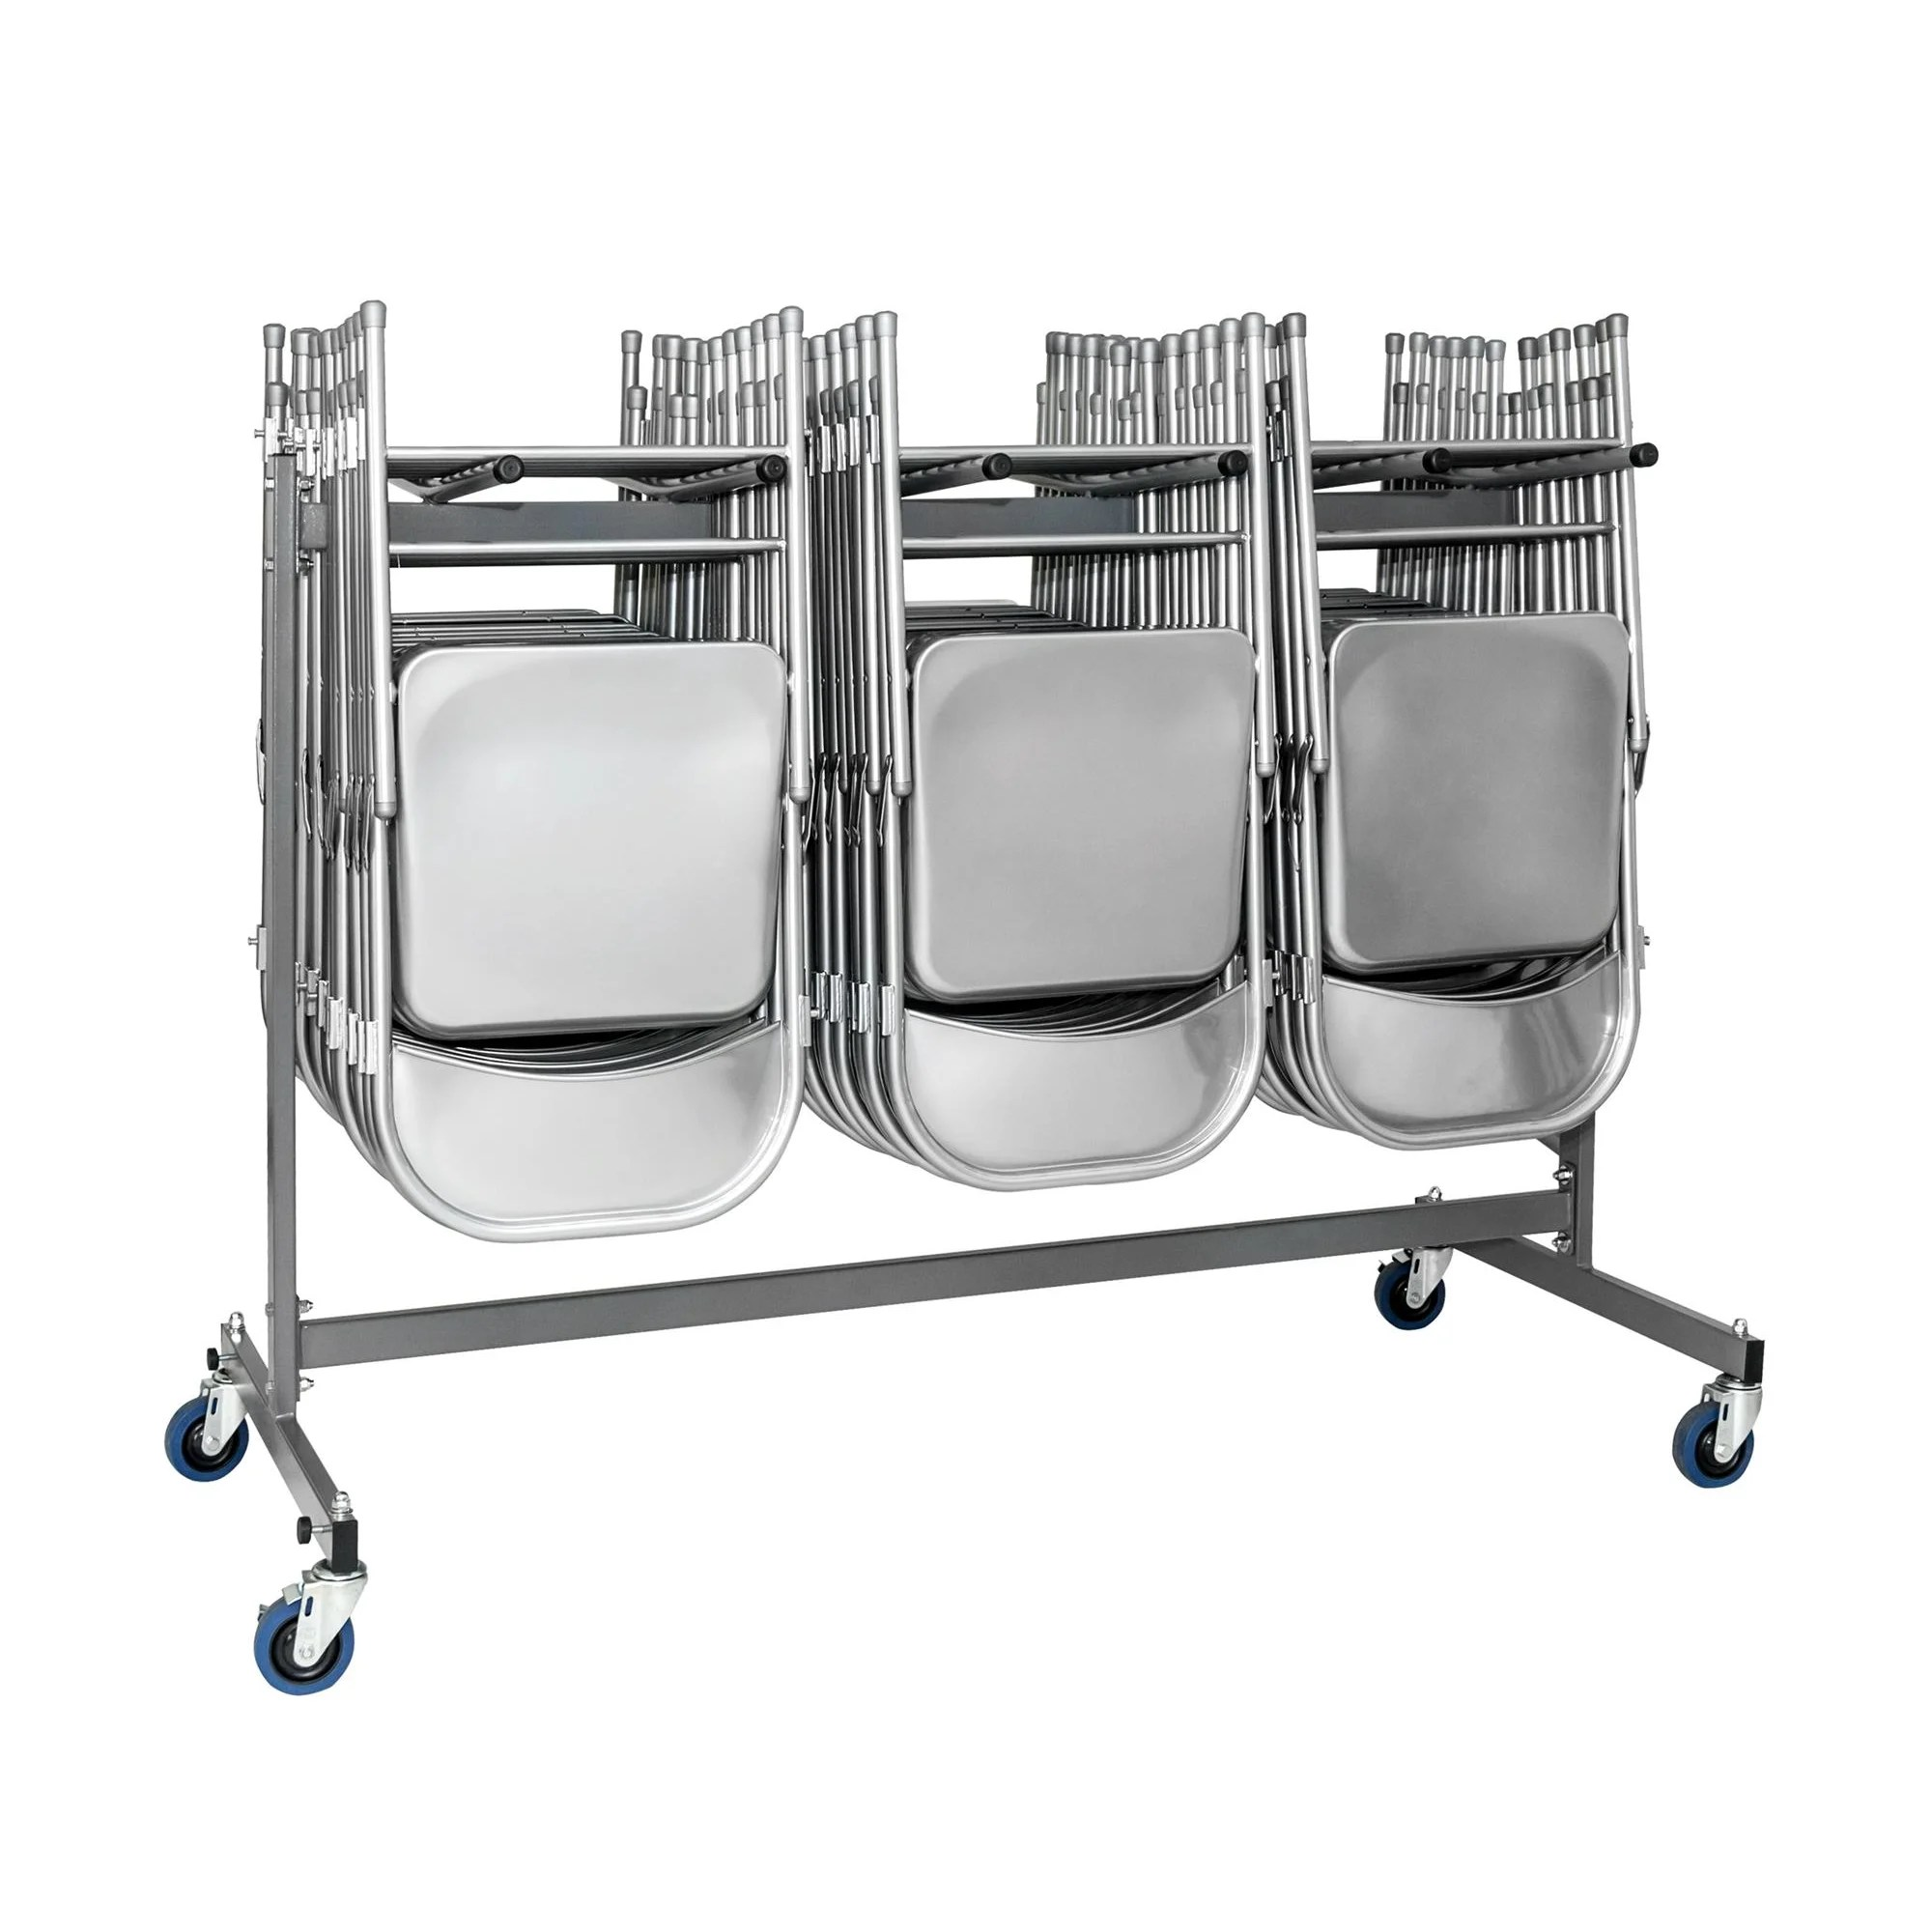 banquet chair trolley heavy duty portable classic 48 6 quot x 68 9 31 1 gray folding